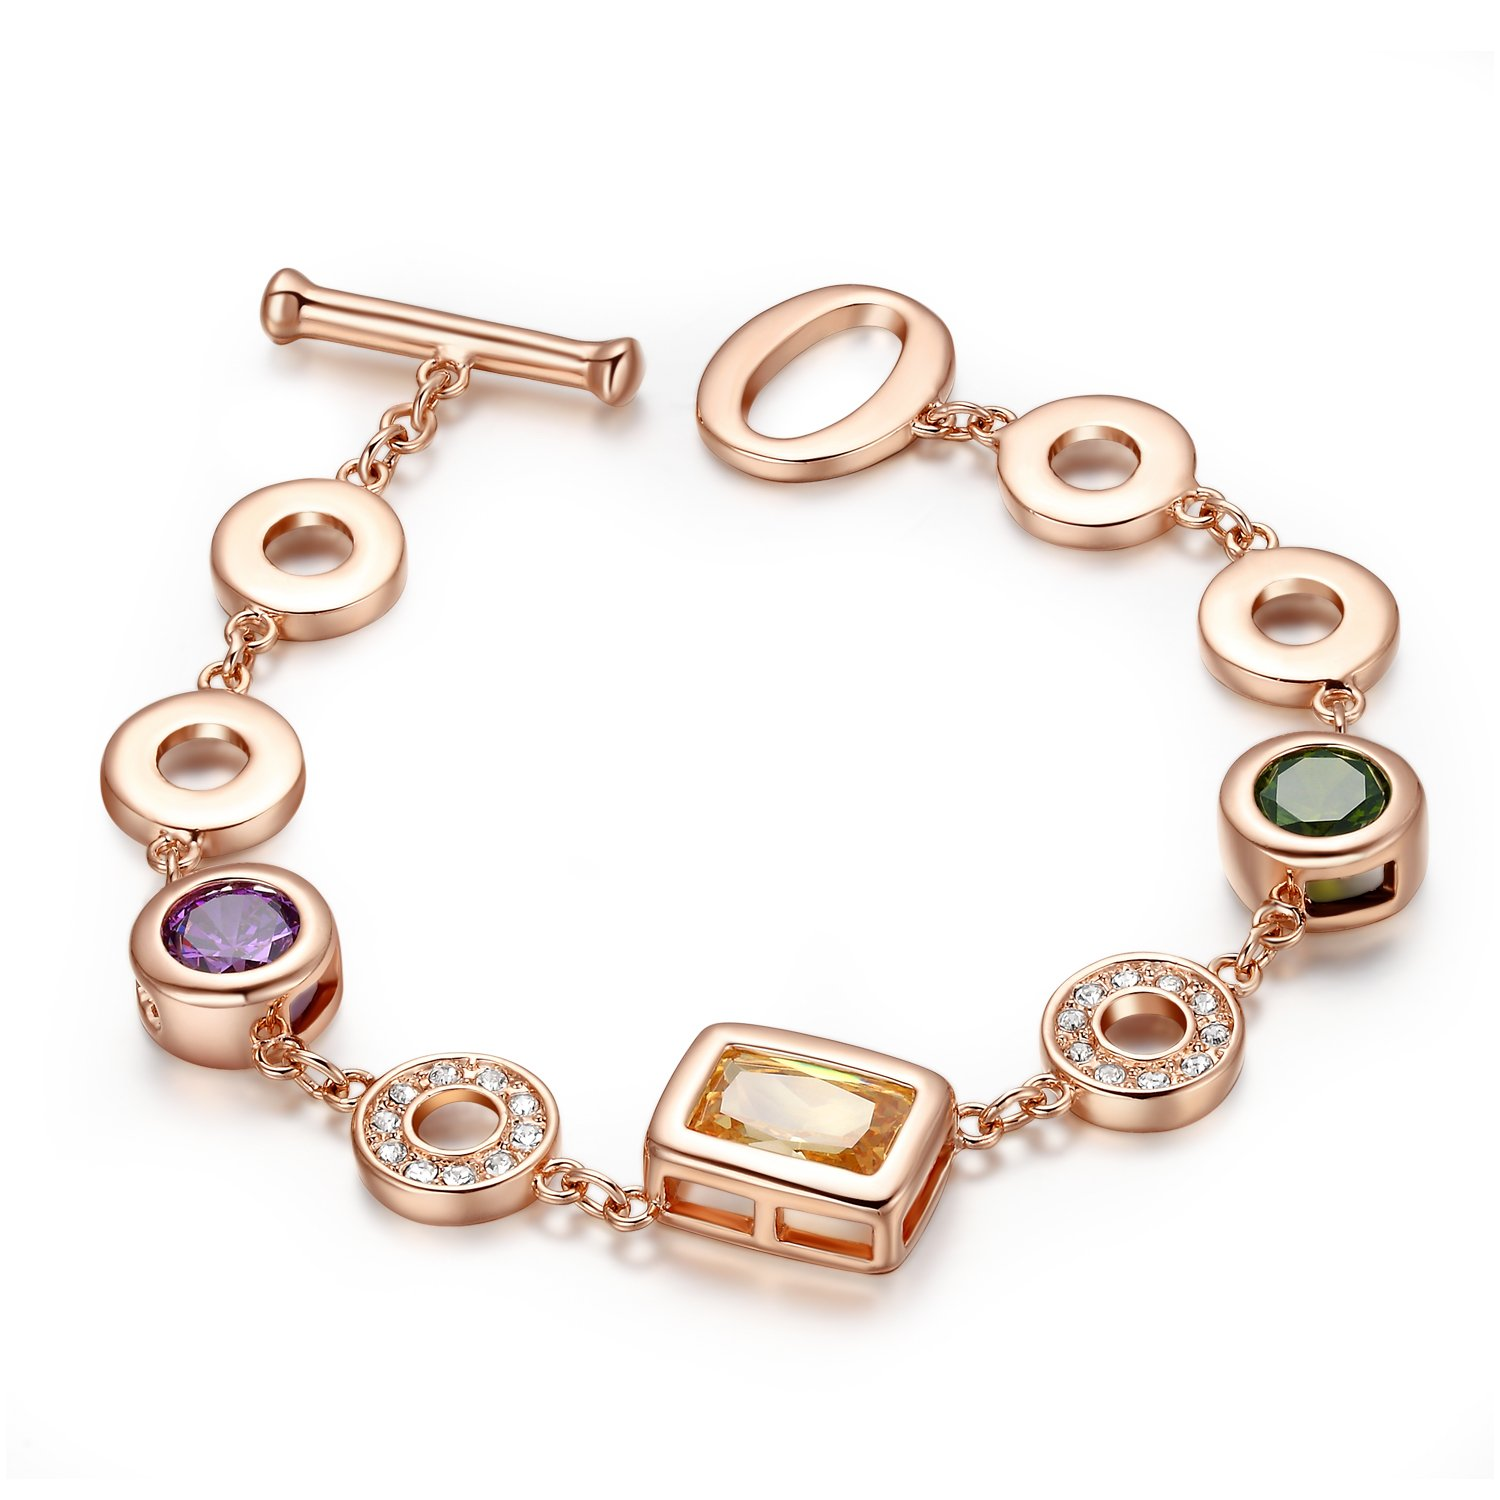 Yoursfs Floating Locket Bracelet Wedding Women 18K Rose Gold Plated Colorful Austrian Crystal Circle Charms Bracelets Fashion CZ Chain Jewelry for Mother